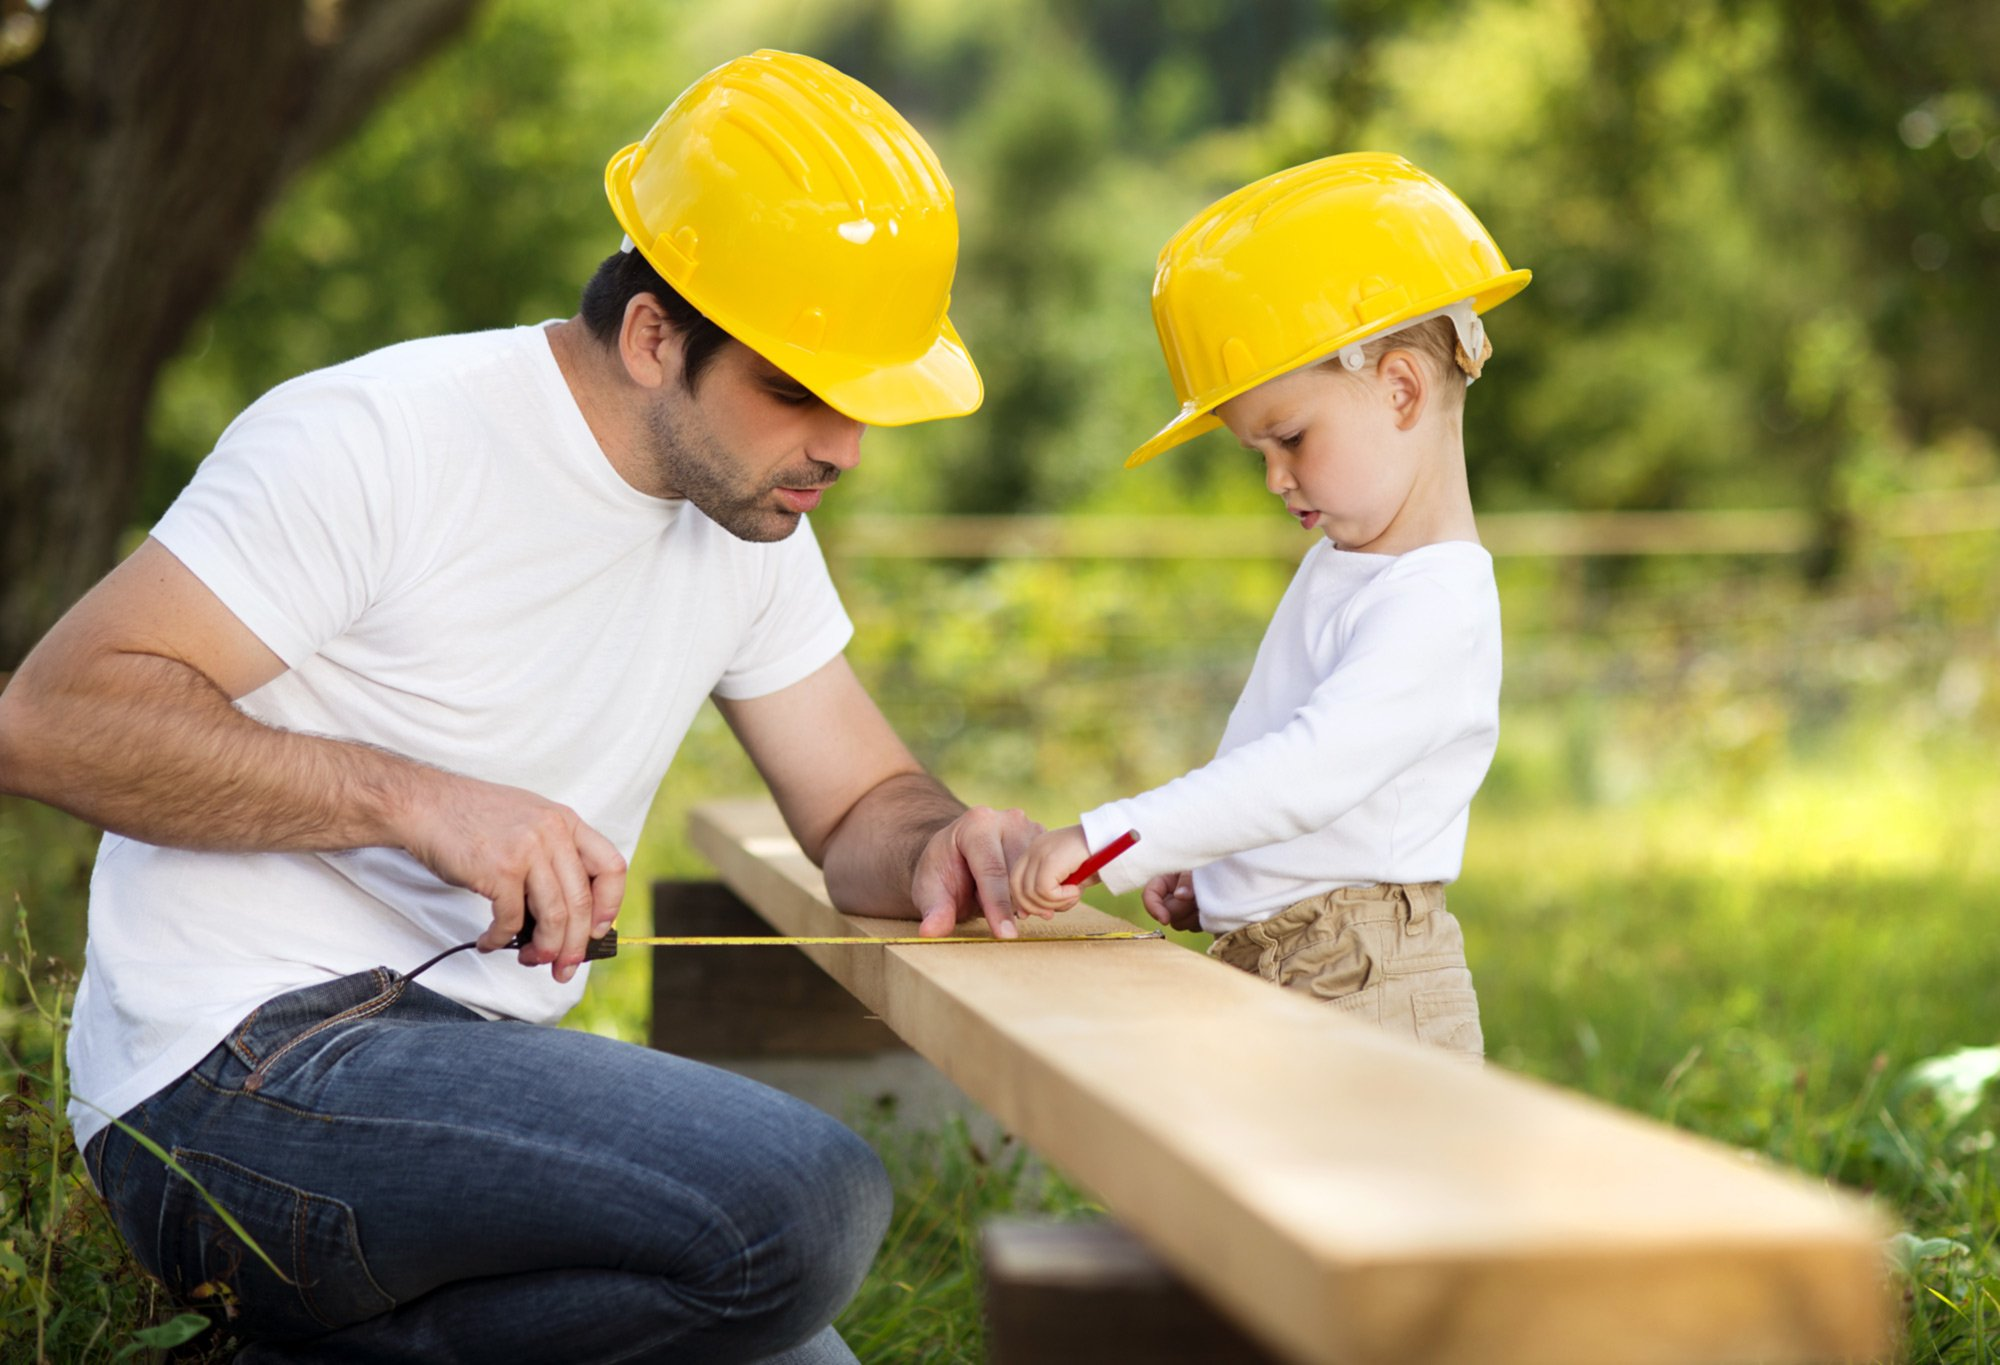 father and son doing carpentry